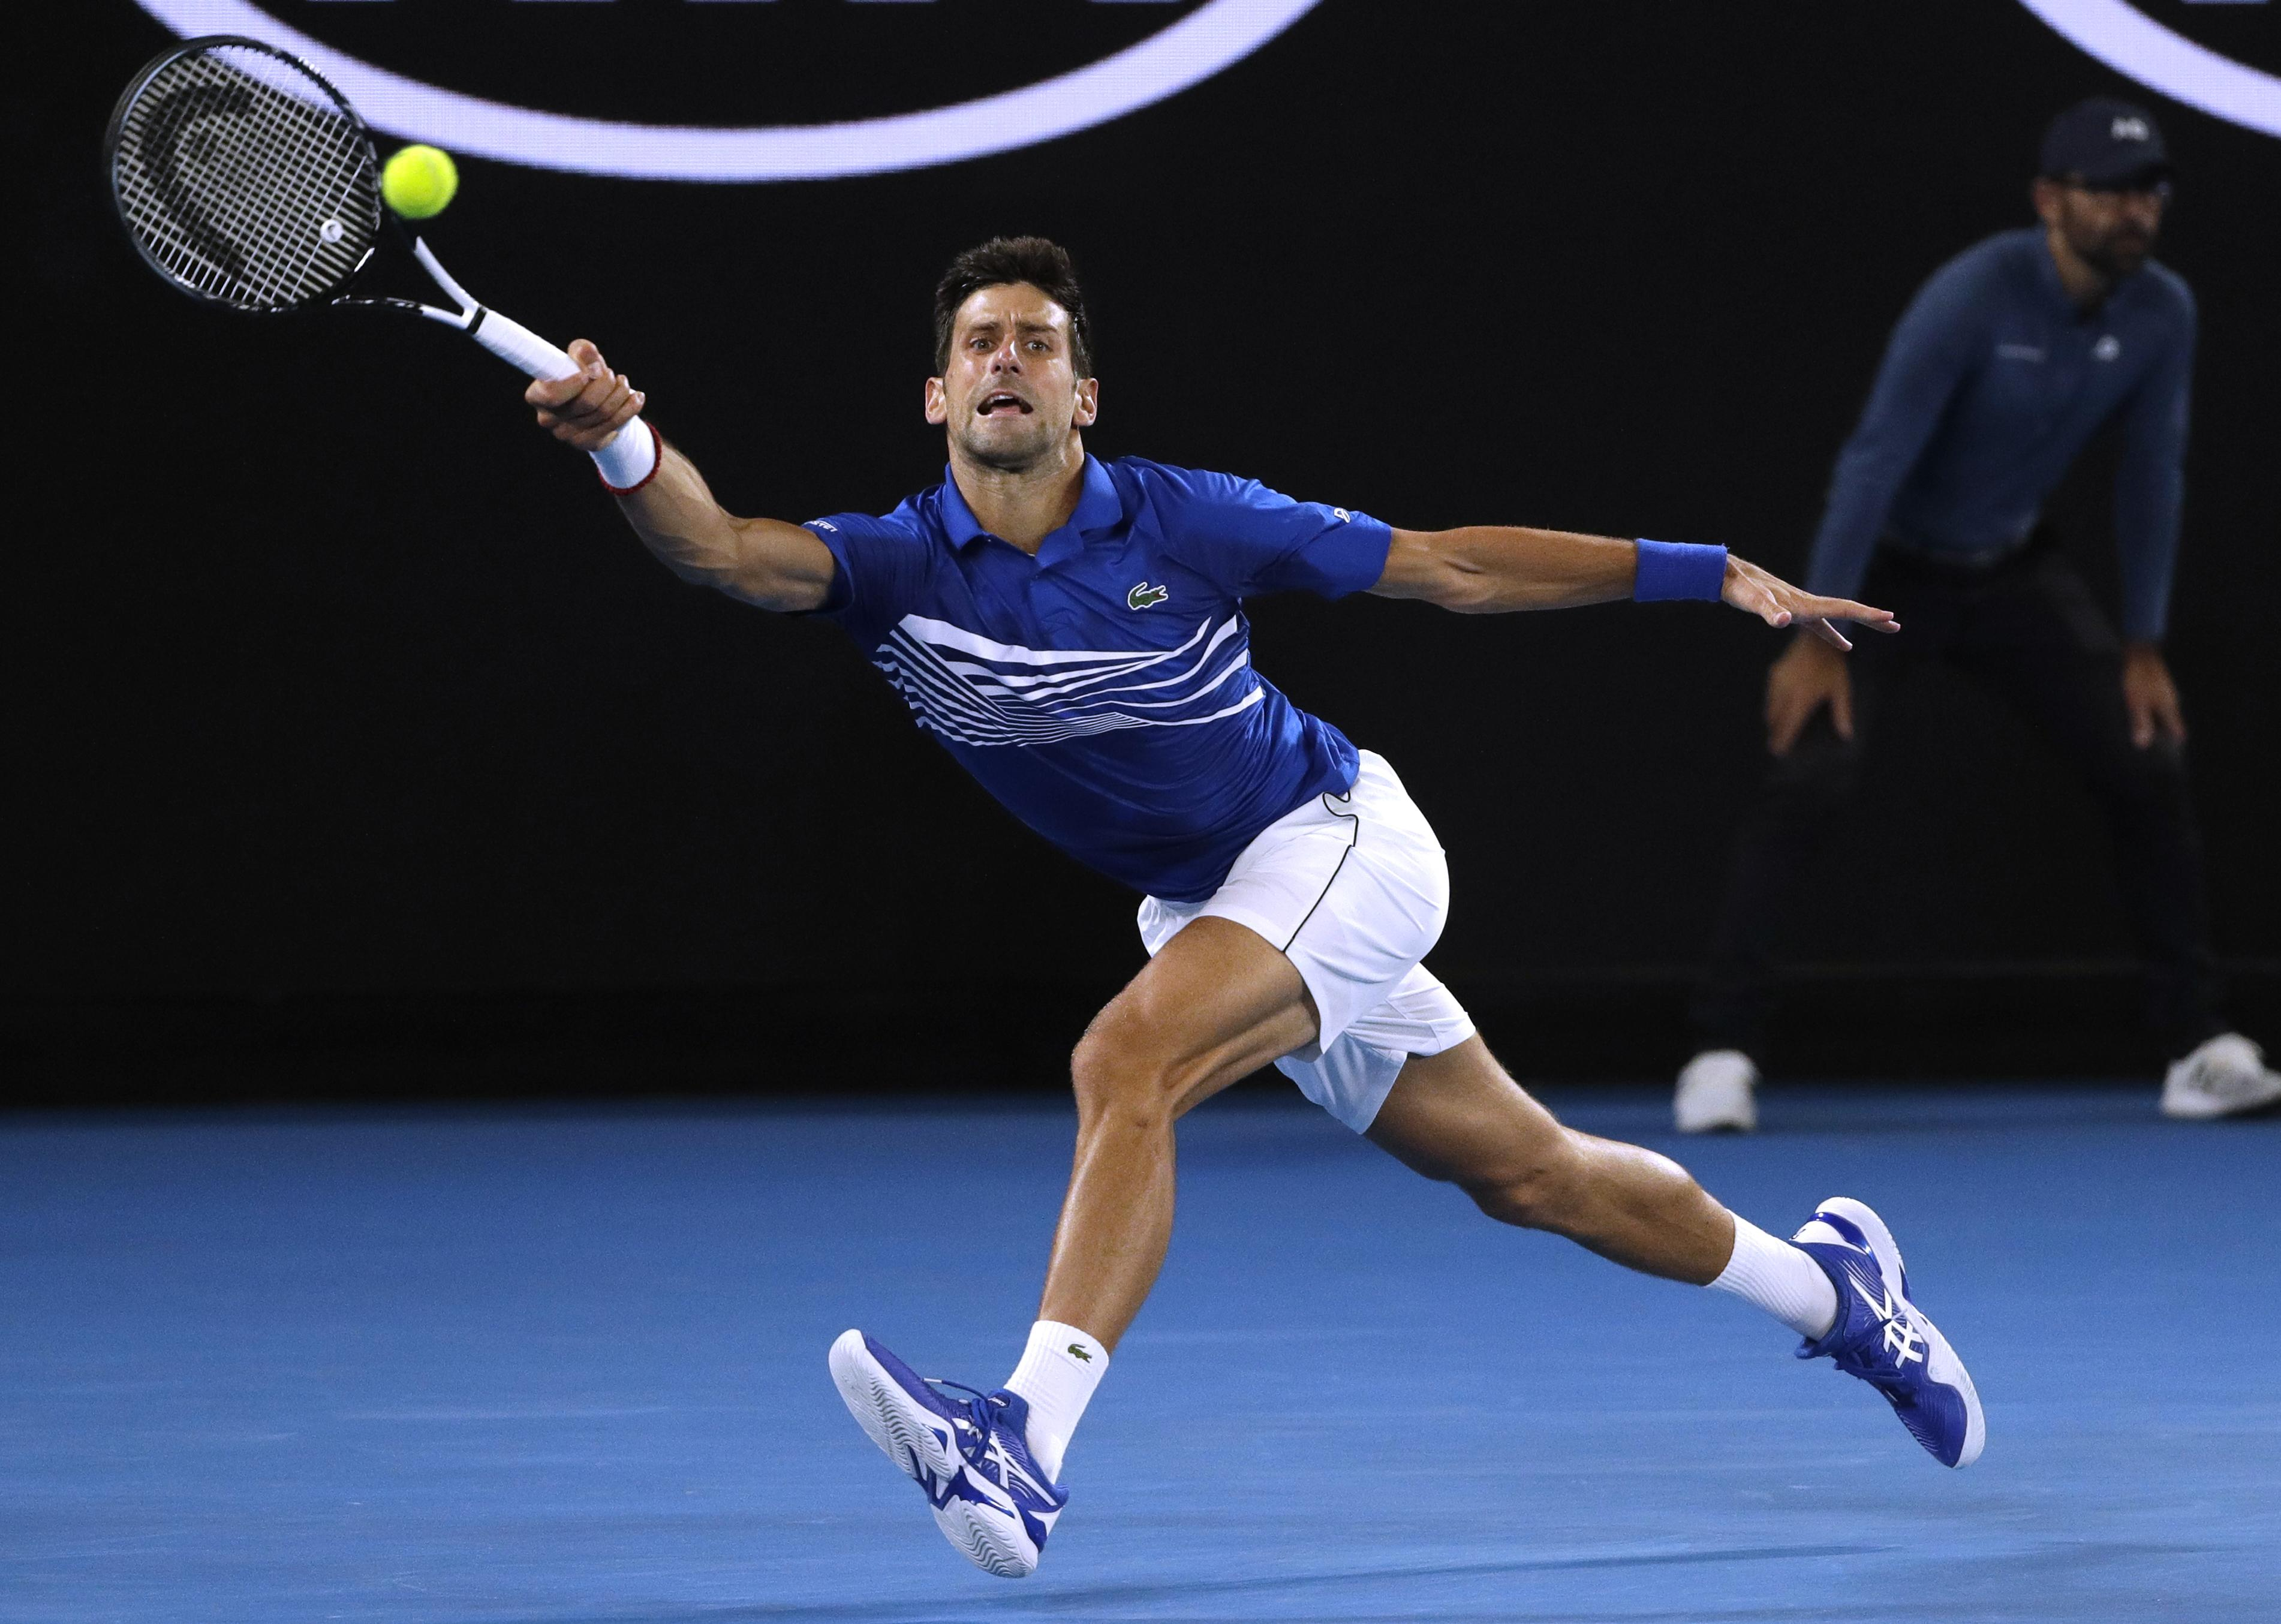 13cb3d2535d5 Serbia s Novak Djokovic makes a forehand return to France s Lucas Pouille  during their semifinal at the